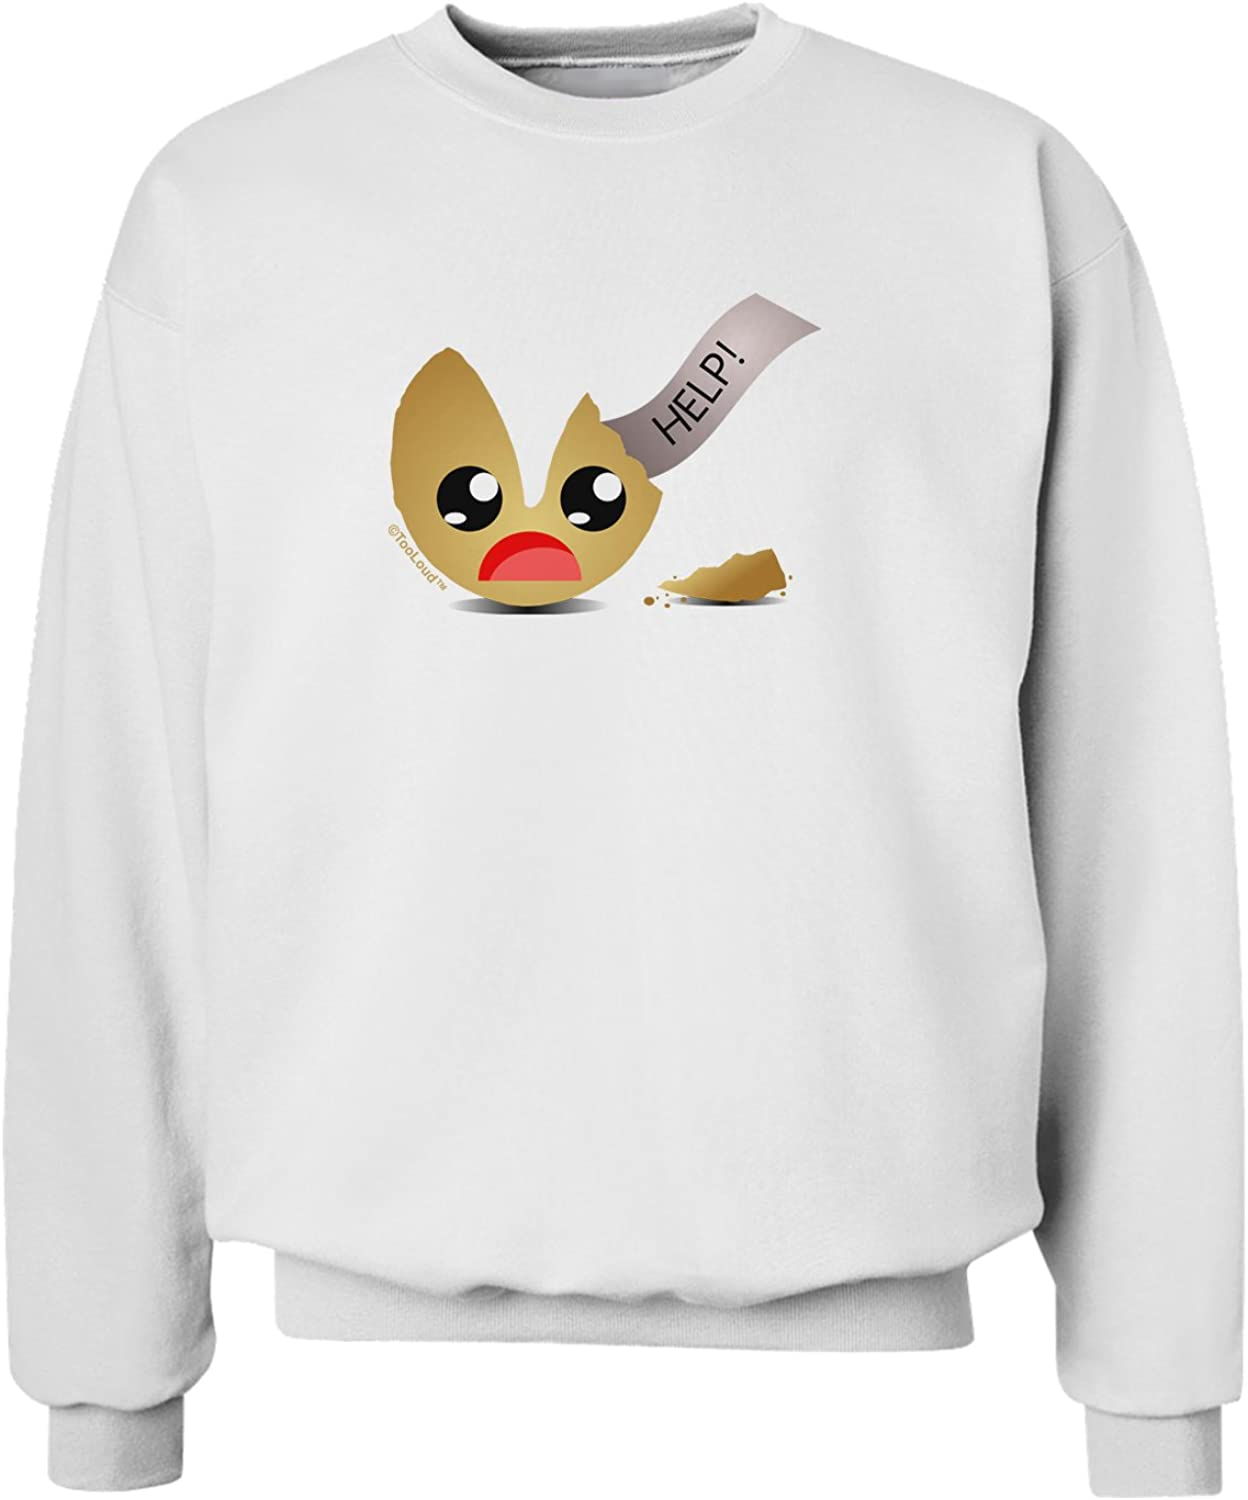 TooLoud Dismembered Fortune Cookie Sweatshirt